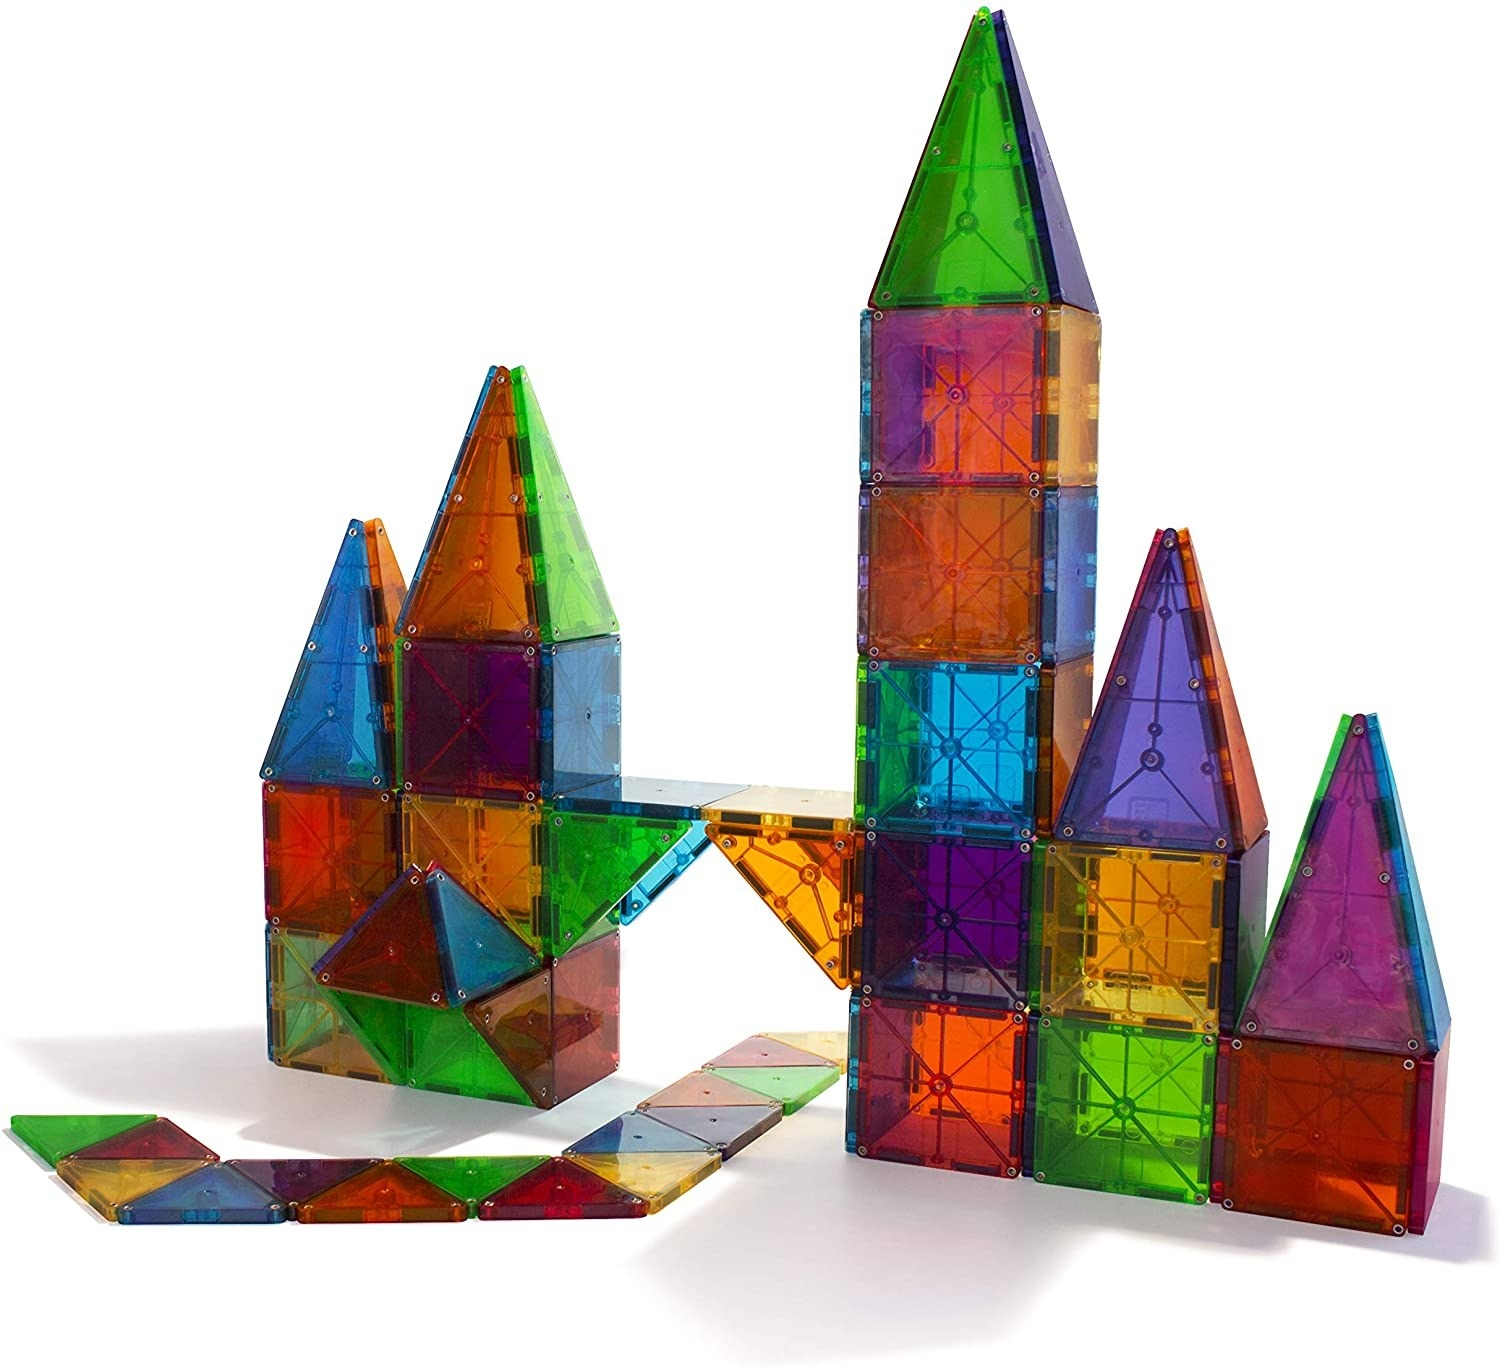 Brightly colored magnetic tiles for children built into a castle